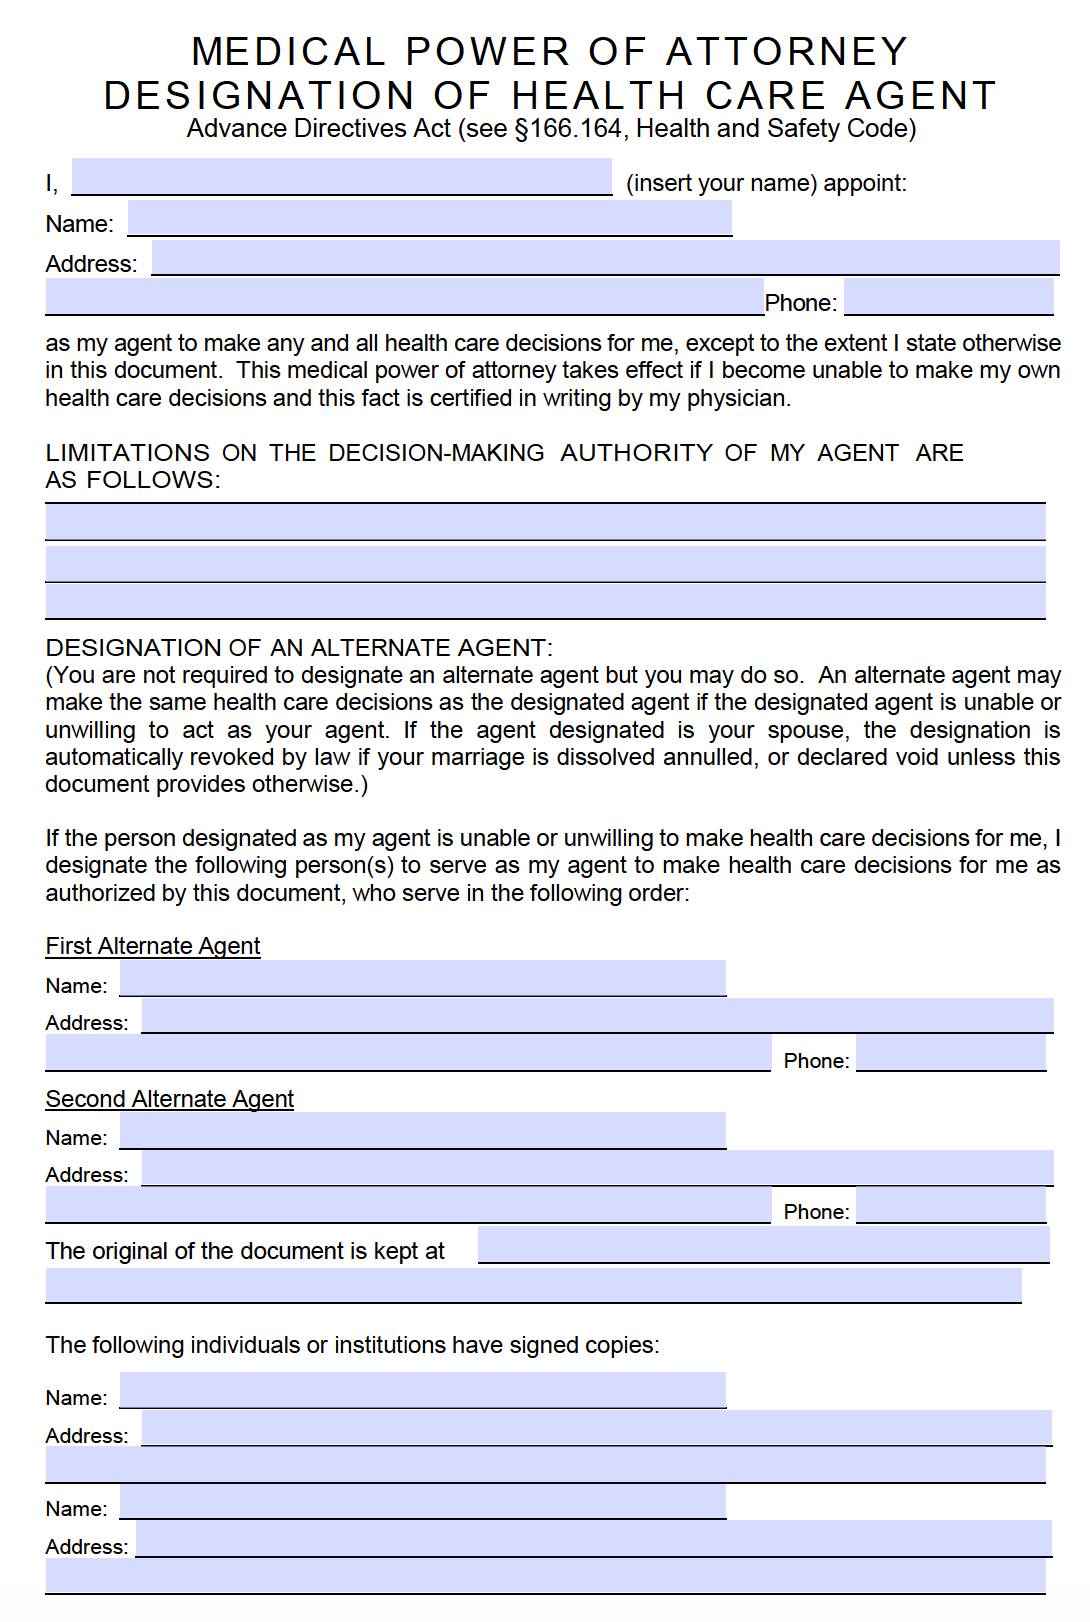 Free Medical Power of Attorney Texas Form – PDF – RTF – Word